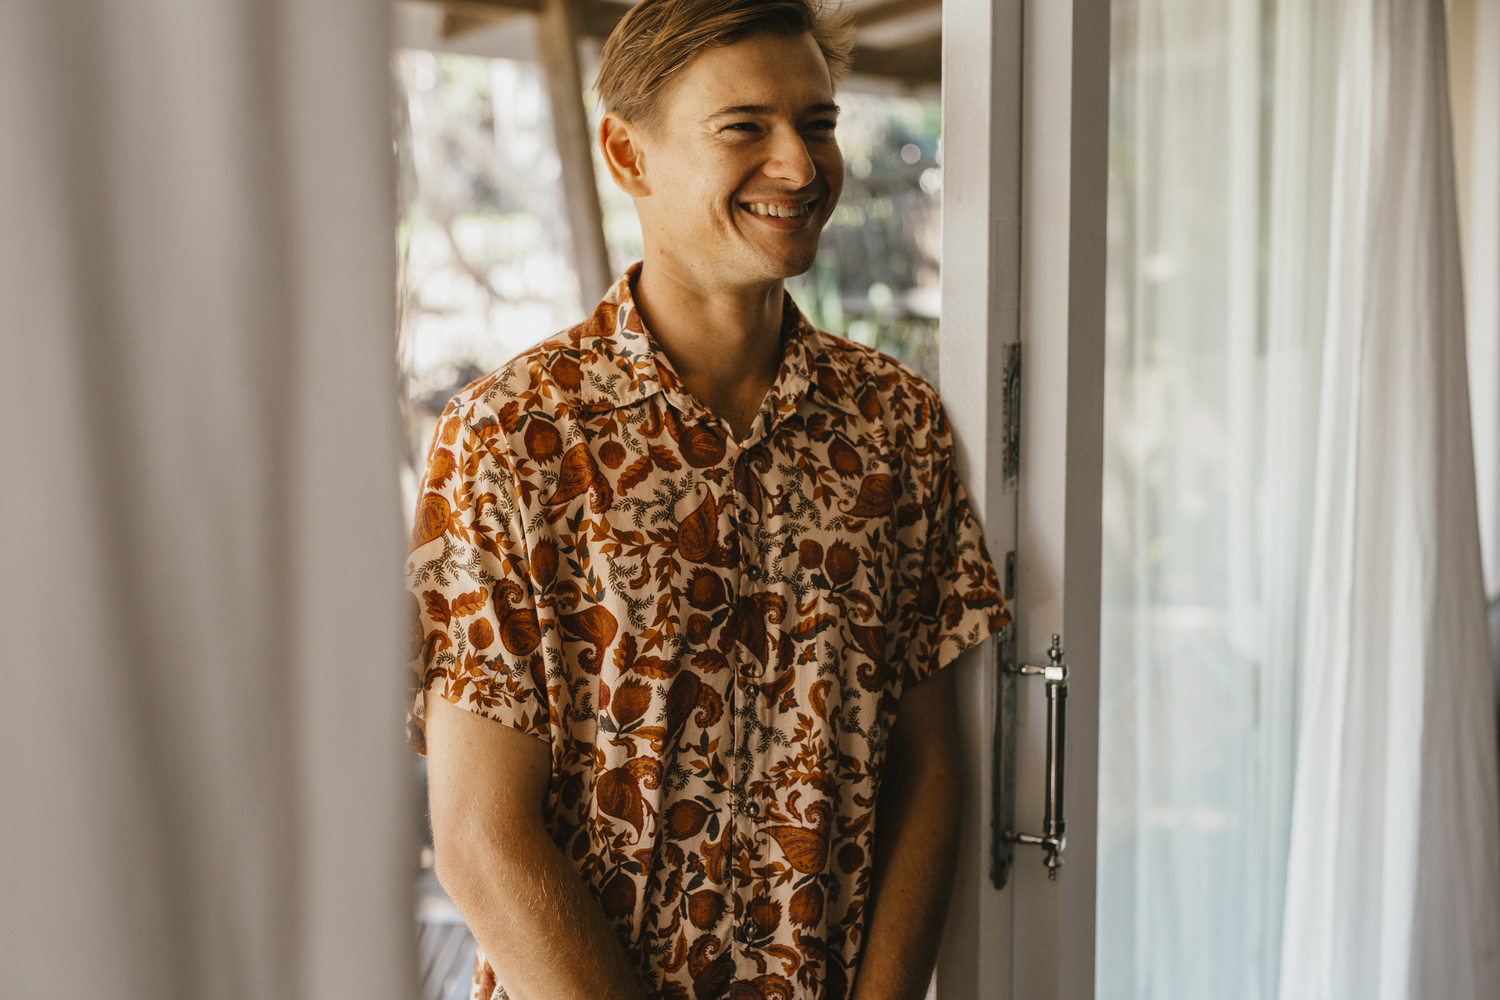 Tasi Travels' Men's Native Paisley Short-Sleeve Voyager Shirt is handmade from sustainable modal